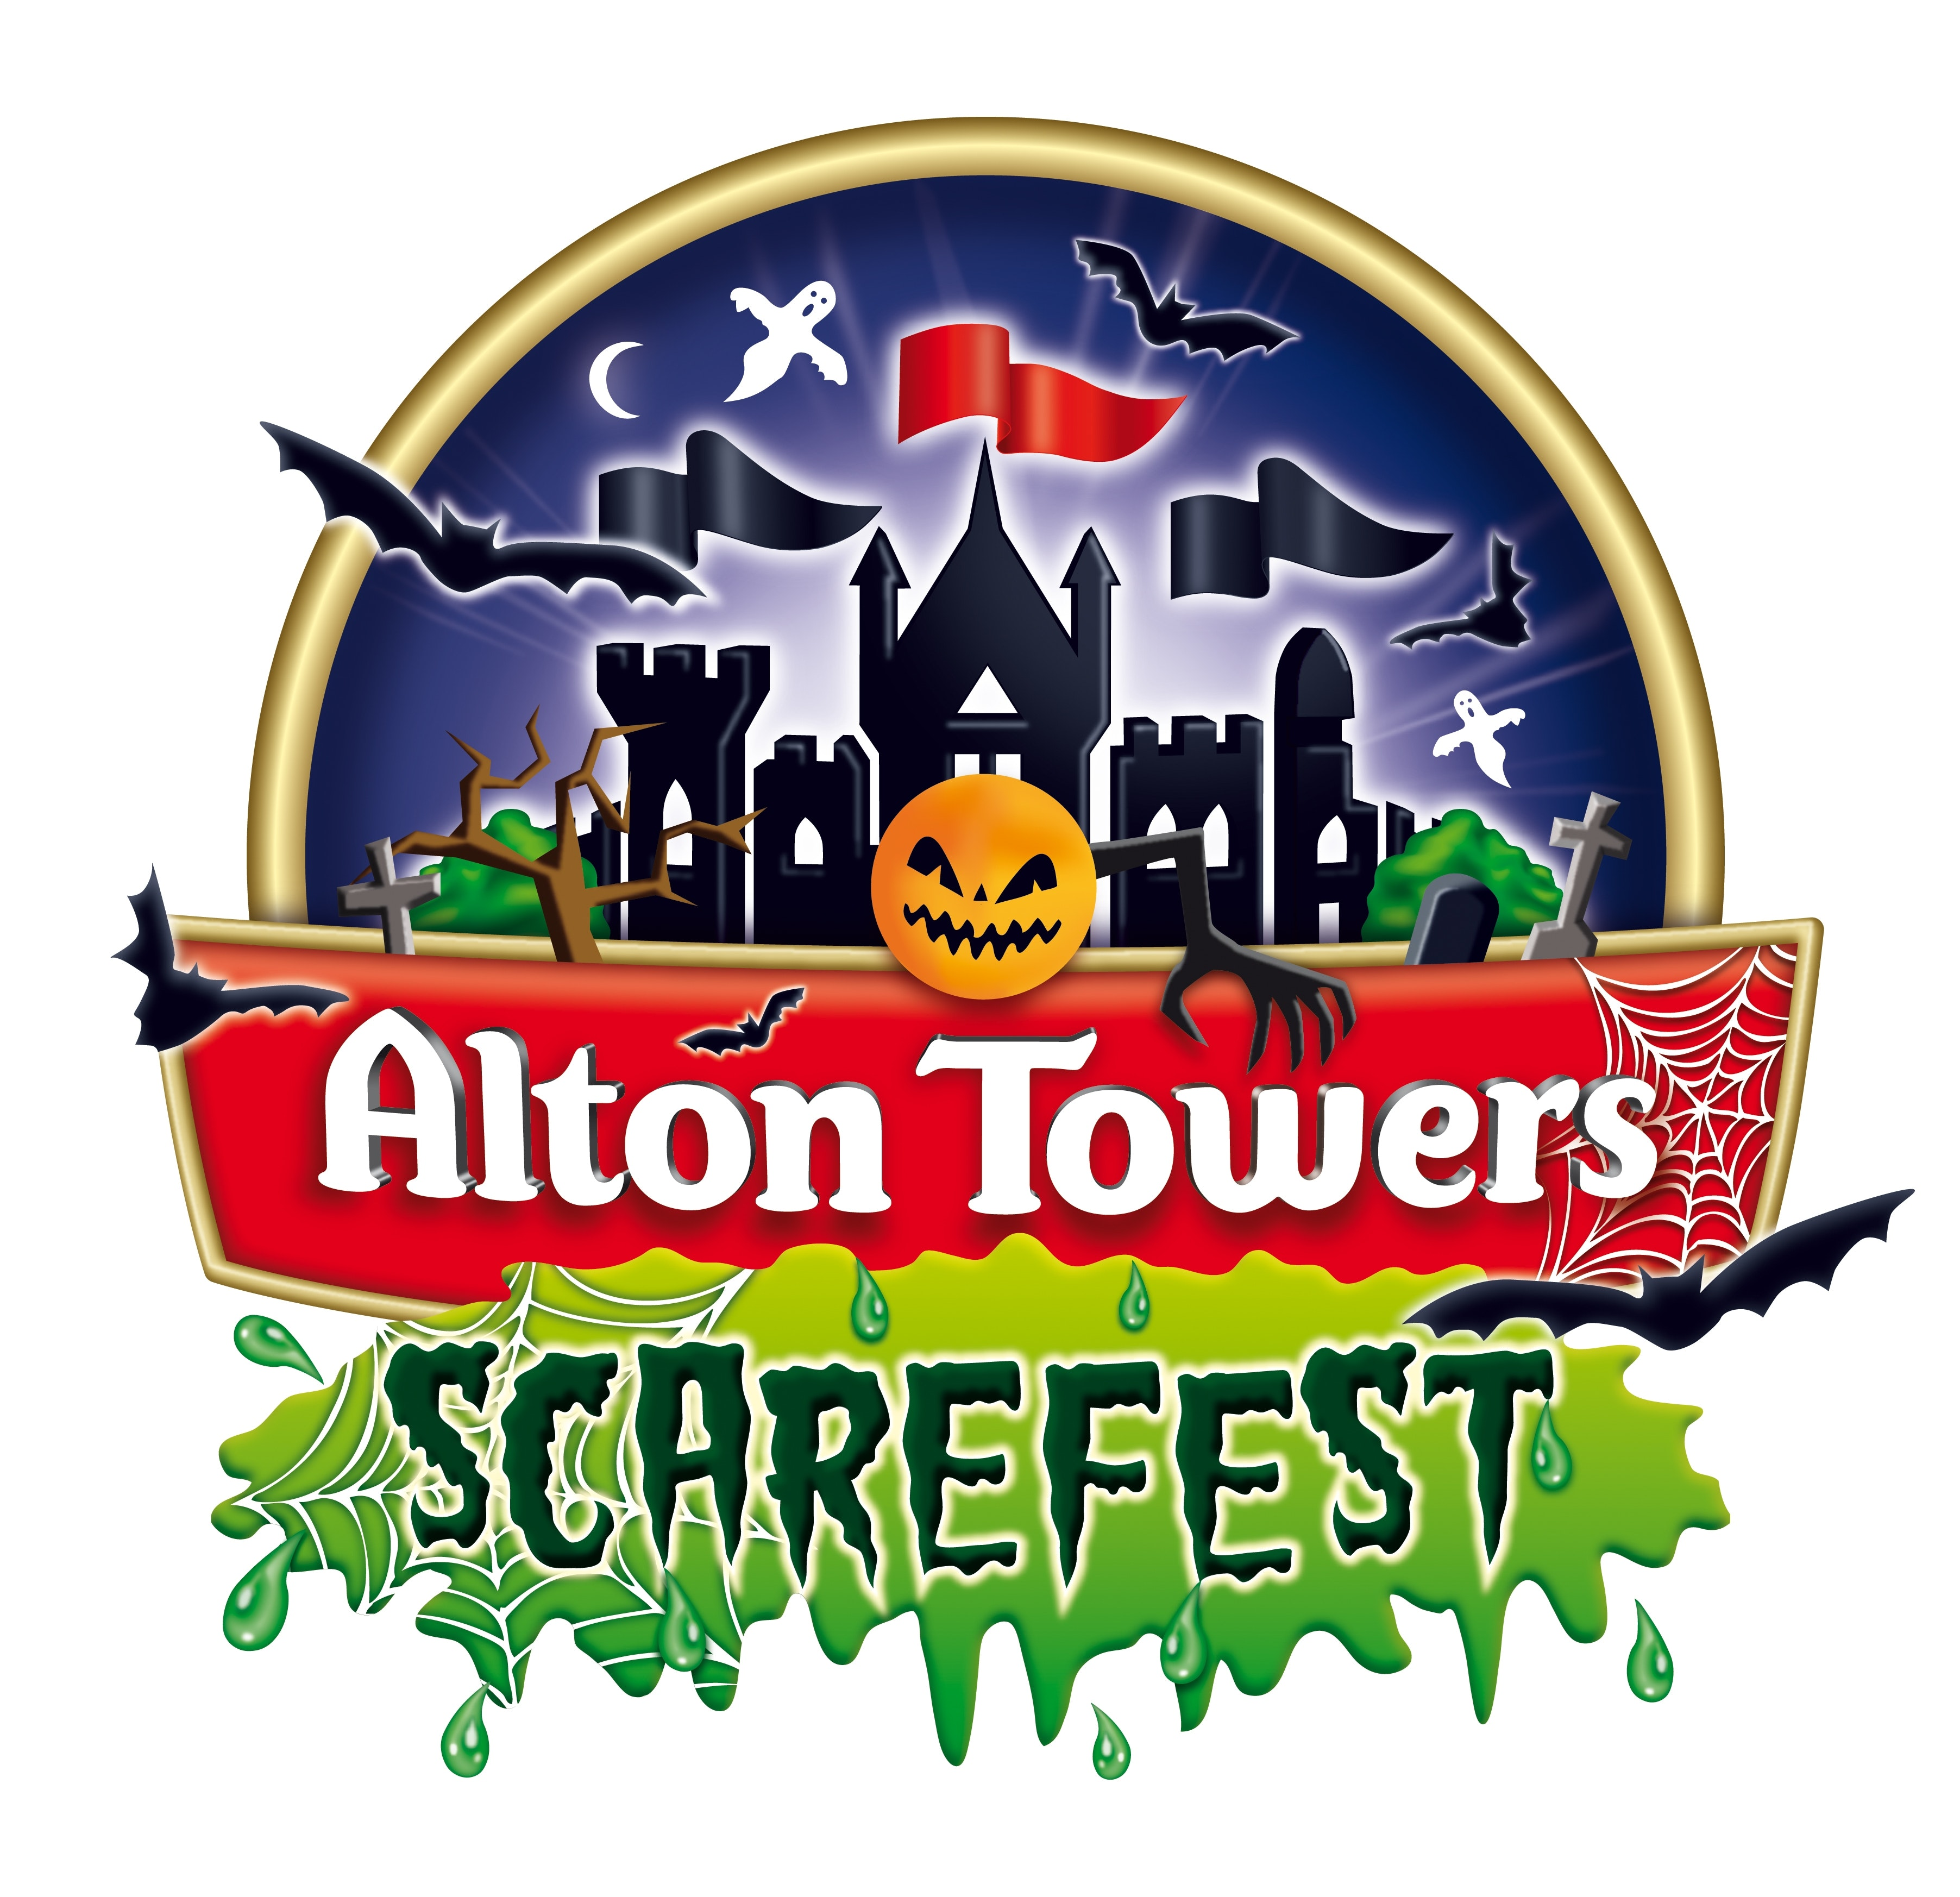 The Alton Towers Resort sweepstakes